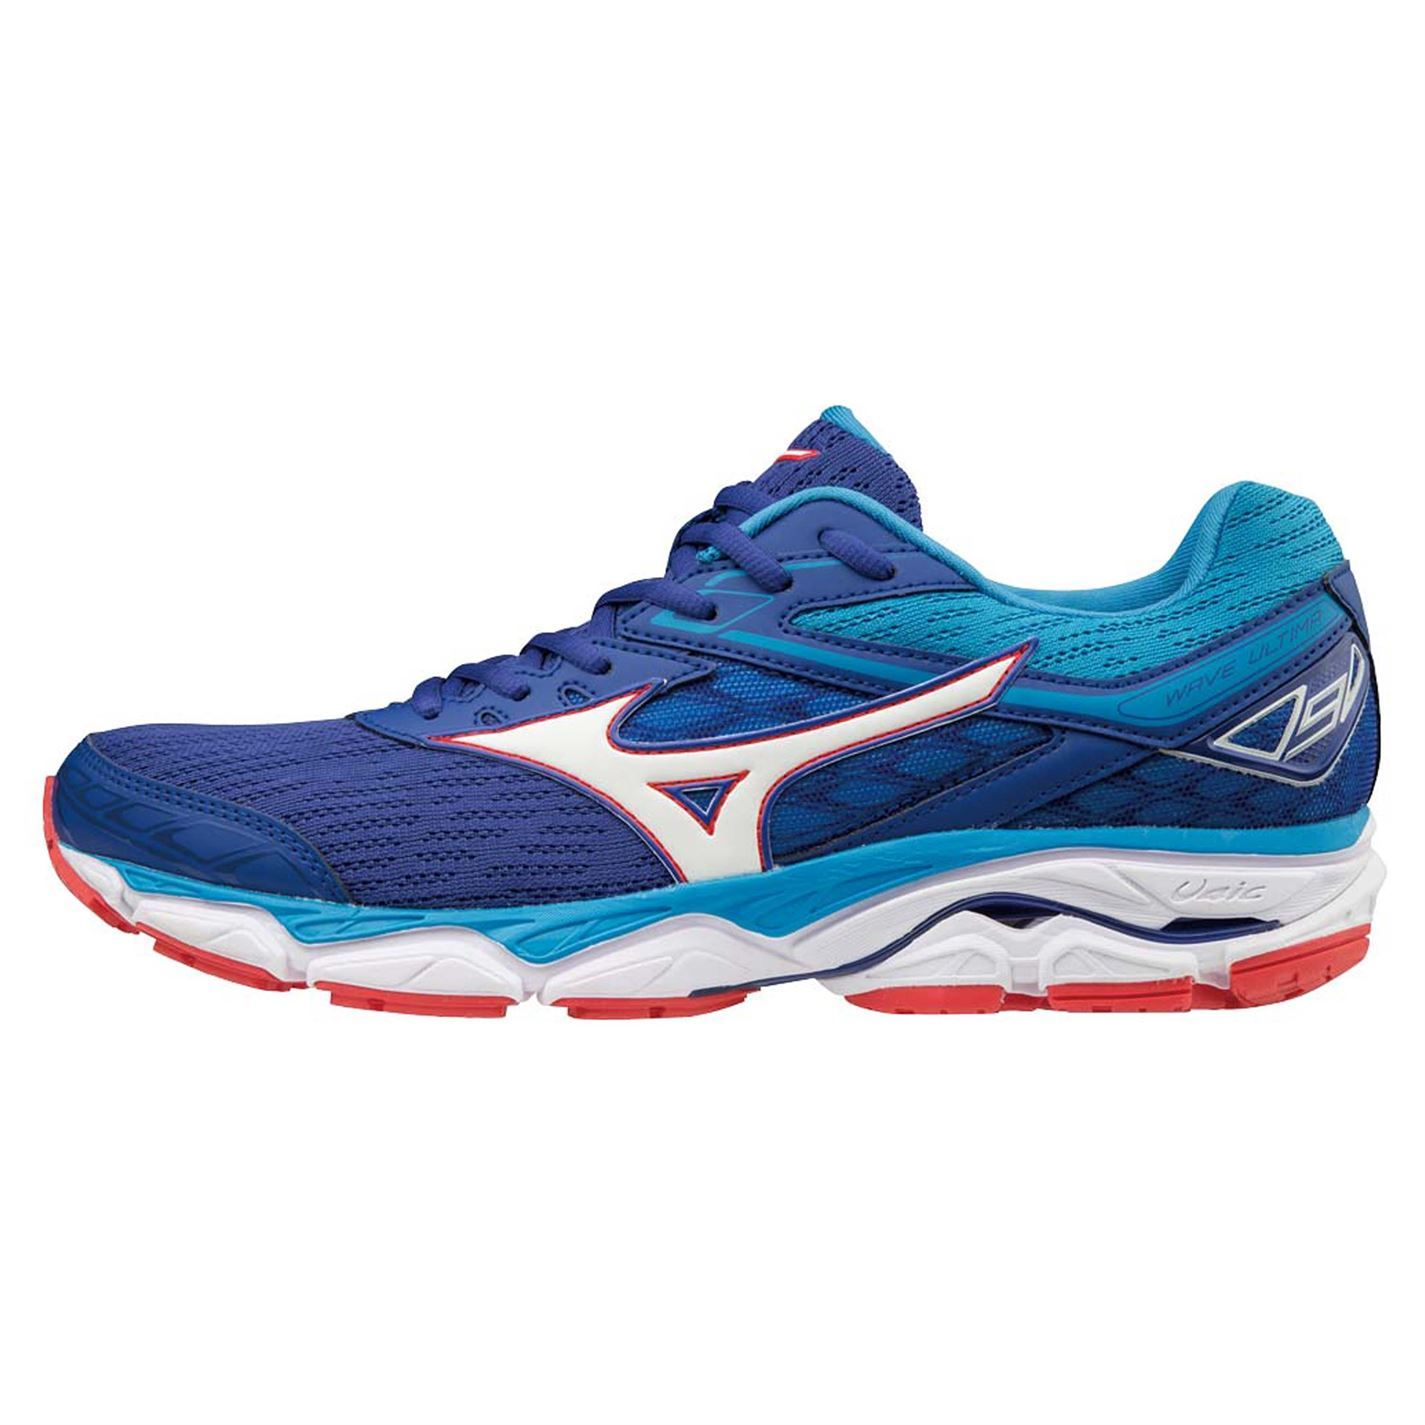 8cec30e759 Mizuno Mens Wave Ultima 9 Running Shoes Road Breathable Lightweight ...